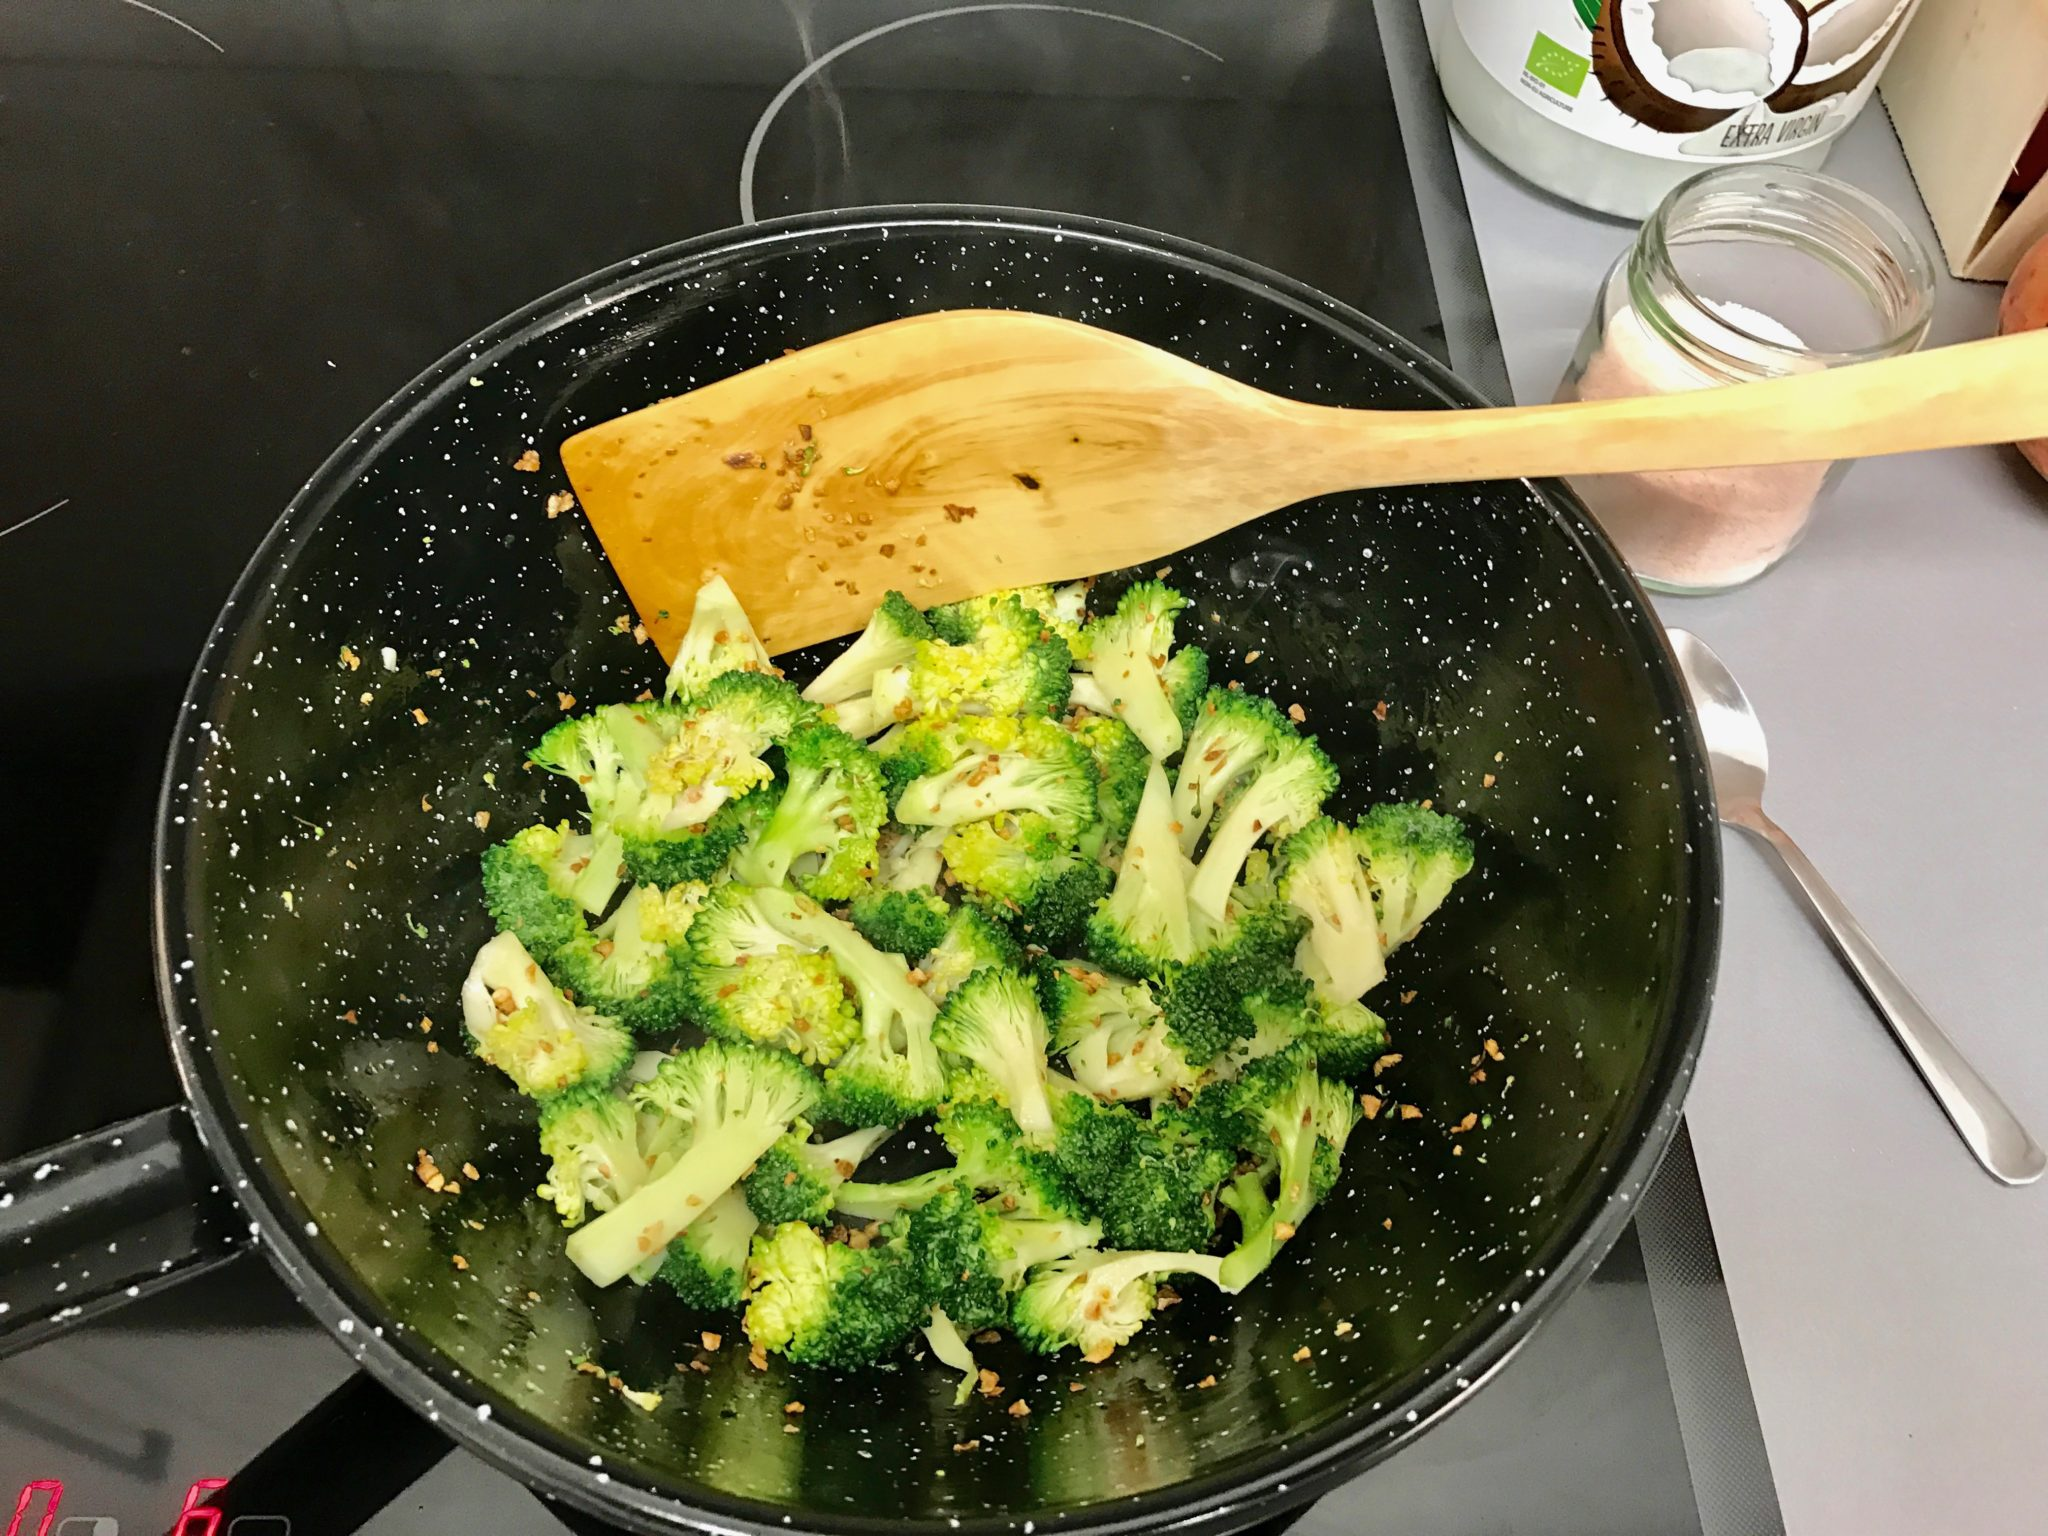 Fry the broccoli 'til the color turns bright green, and add salt. Squeeze the lemon juice in afterwards